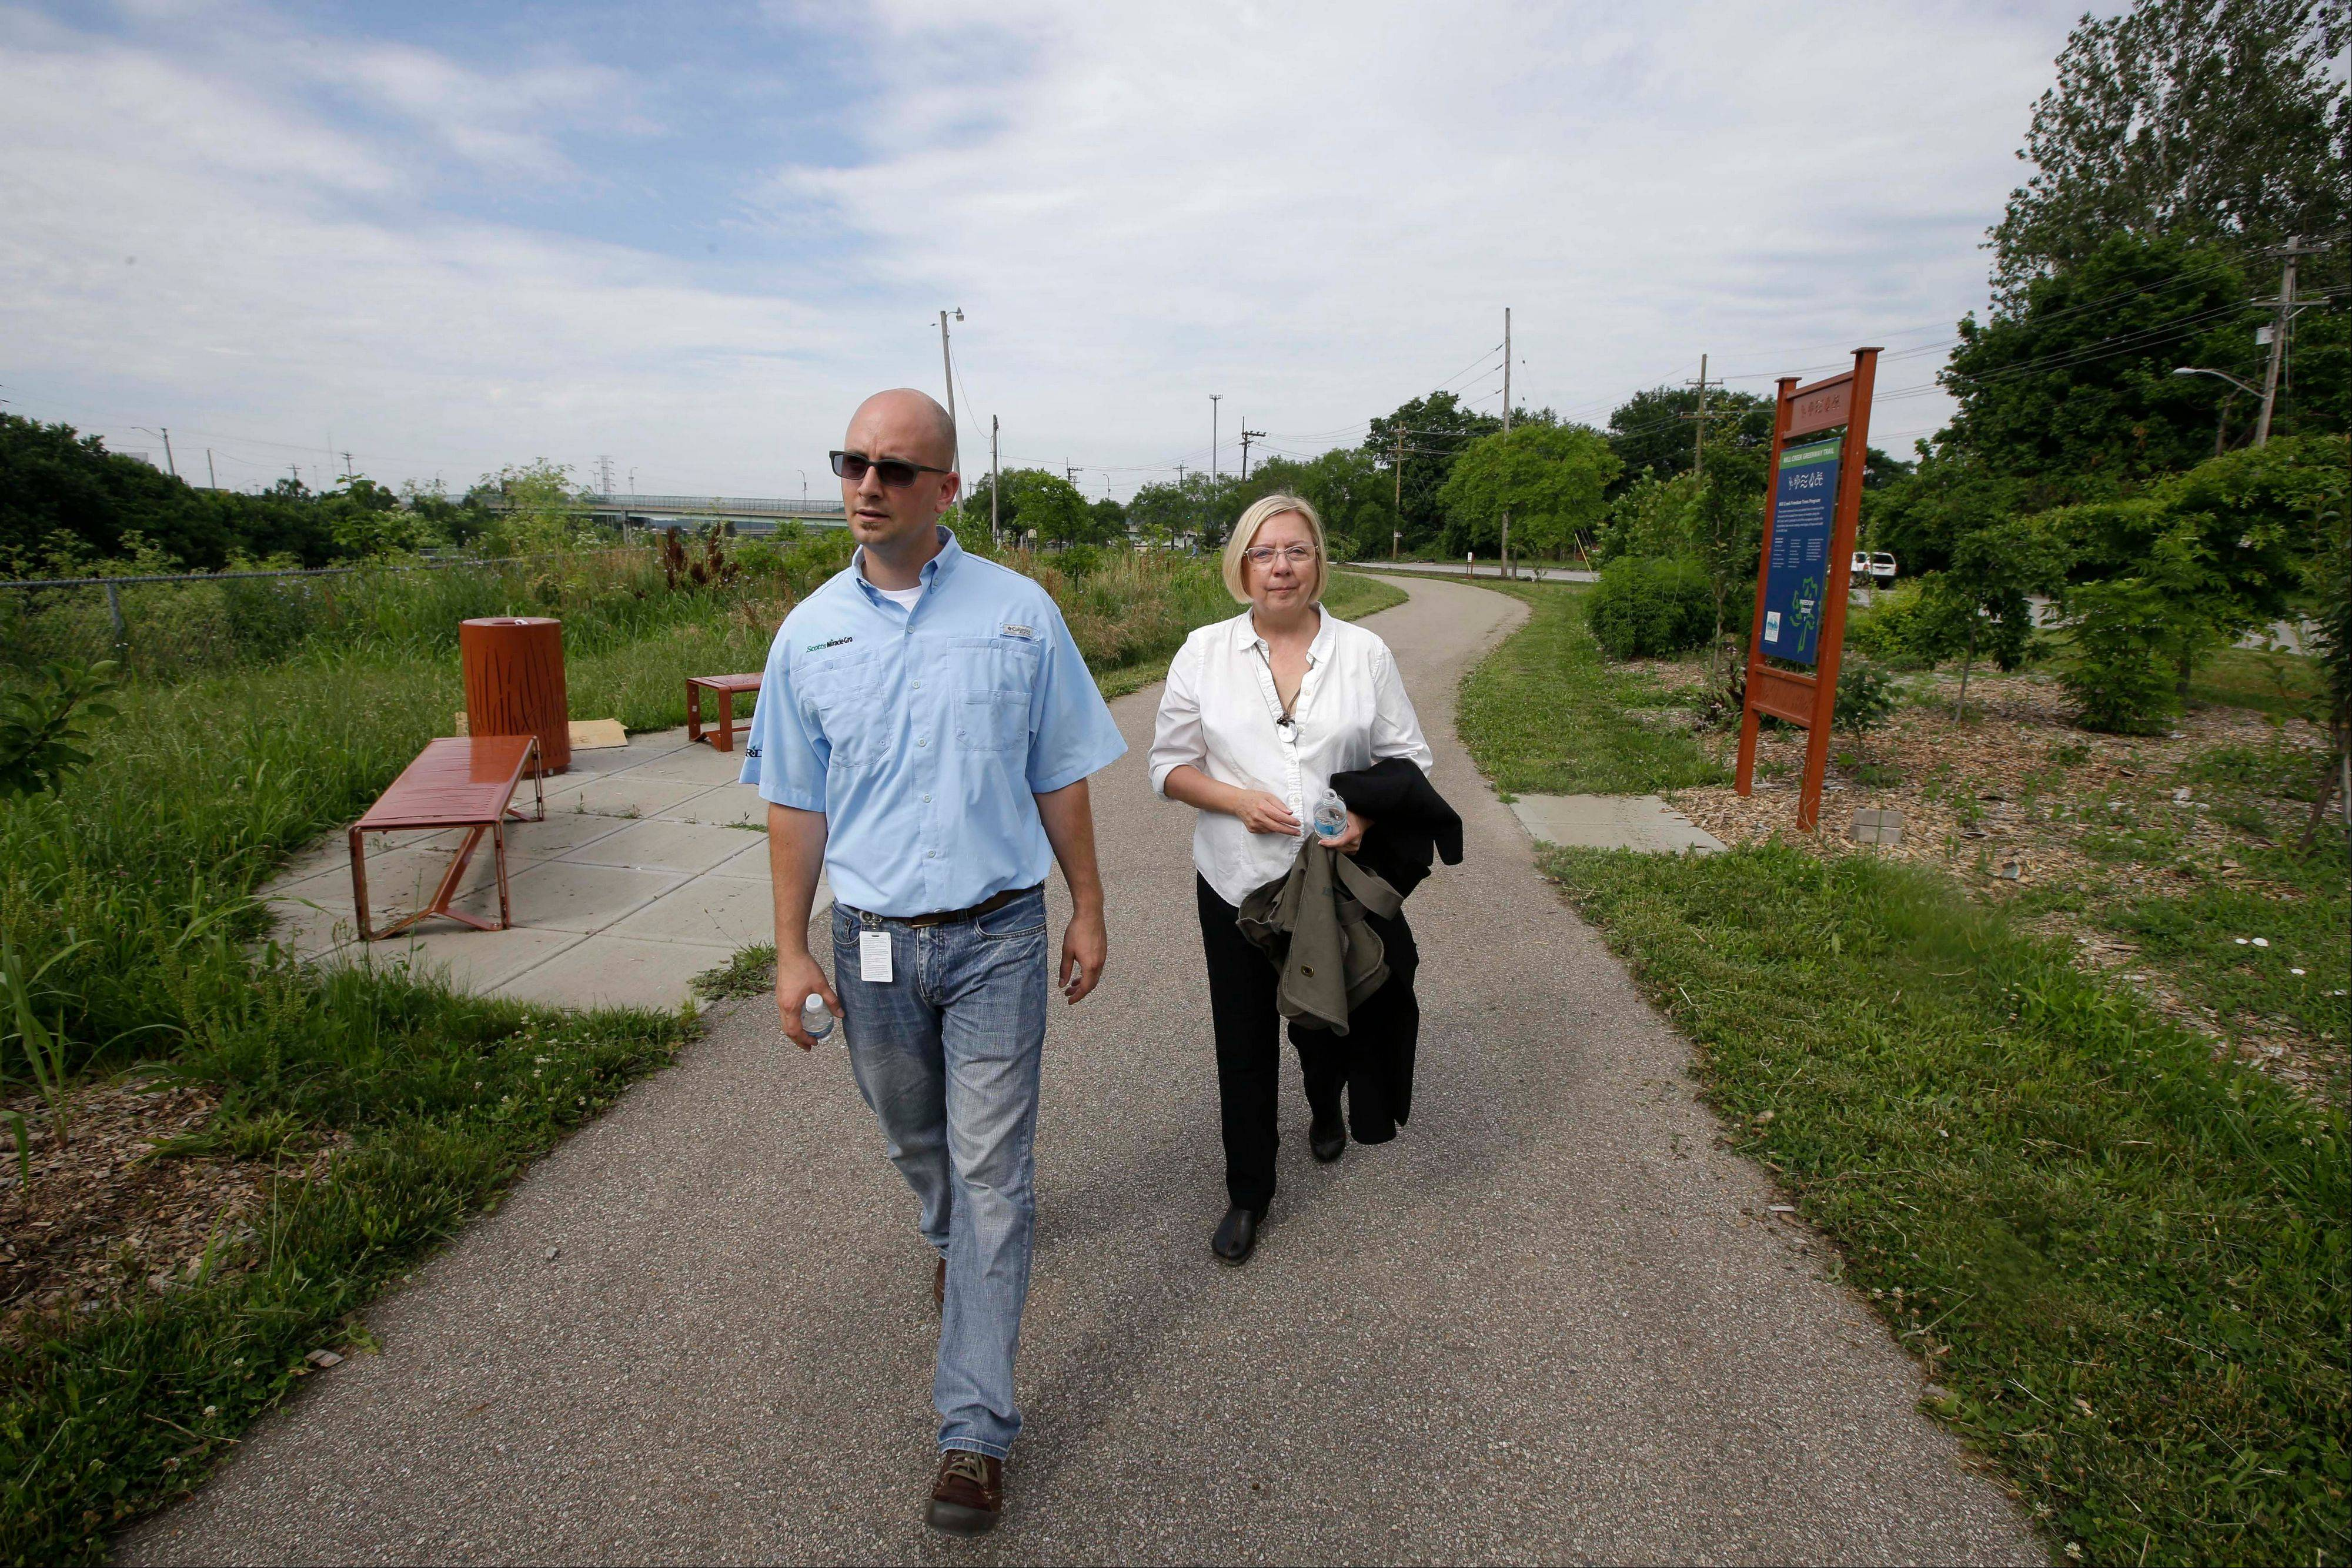 Scotts Miracle-Gro representative Chris Cerveny, left, and Robin Corathers of Groundwork Cincinnati walk along the Mill Creek Greenway, in Cincinnati. The city of Cincinnati, with the help of ScottsMiracle-Gro's GRO1000 program, is revitalizing the area near the creek that runs through industrial areas and has long been a problem due to deforestation, pollution and sewer overflow.